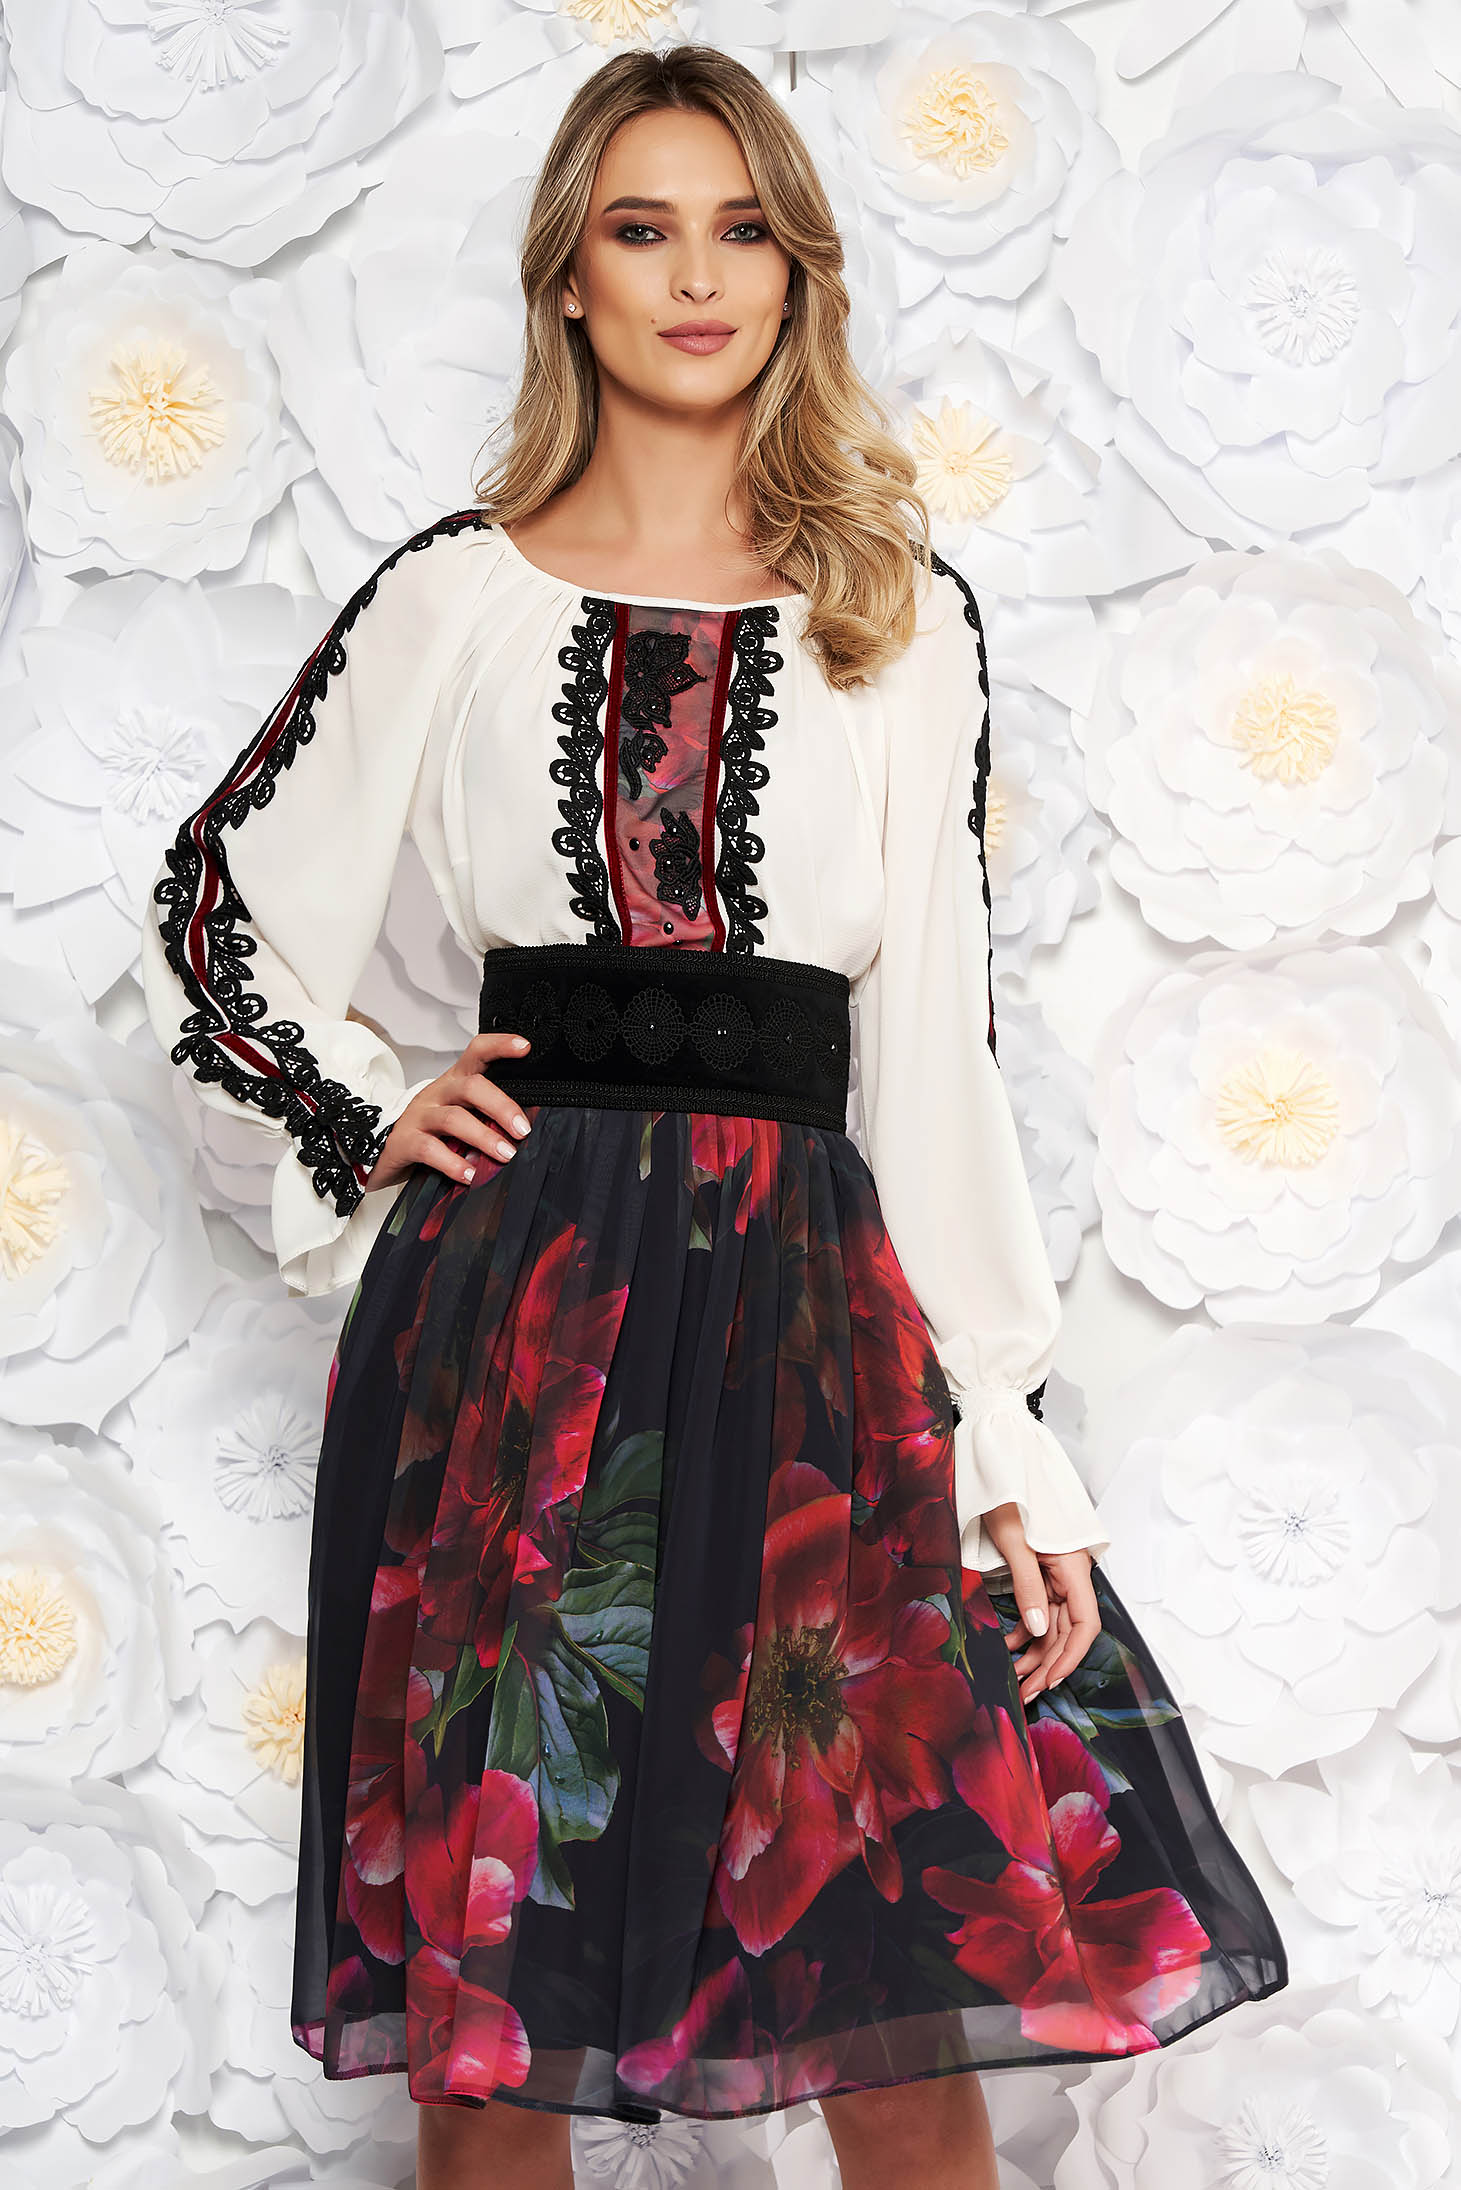 LaDonna black elegant lady set from 2 pieces with lace details accessorized with tied waistband